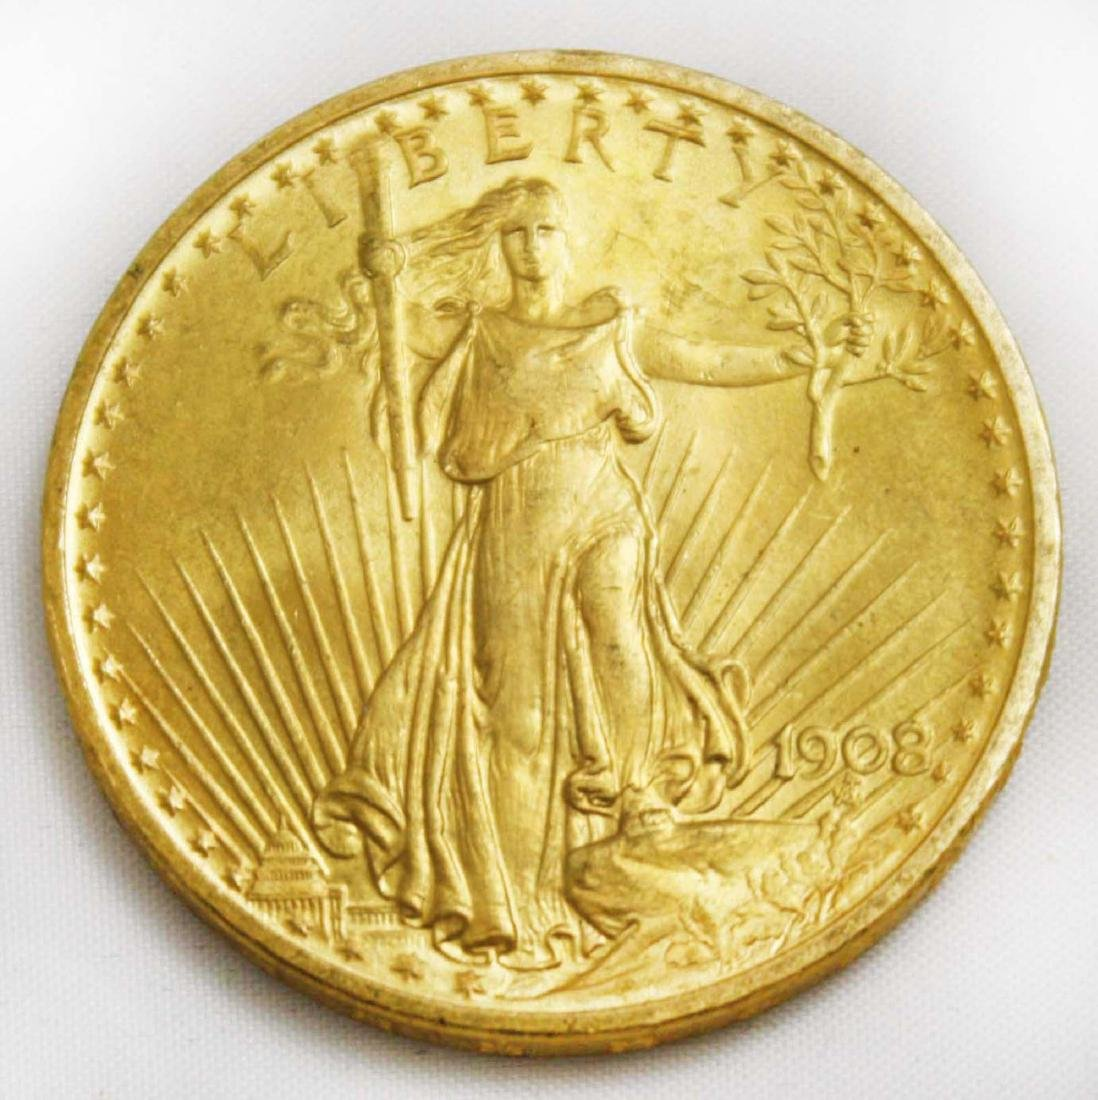 1908 Twenty dollar St Gaudens double eagle